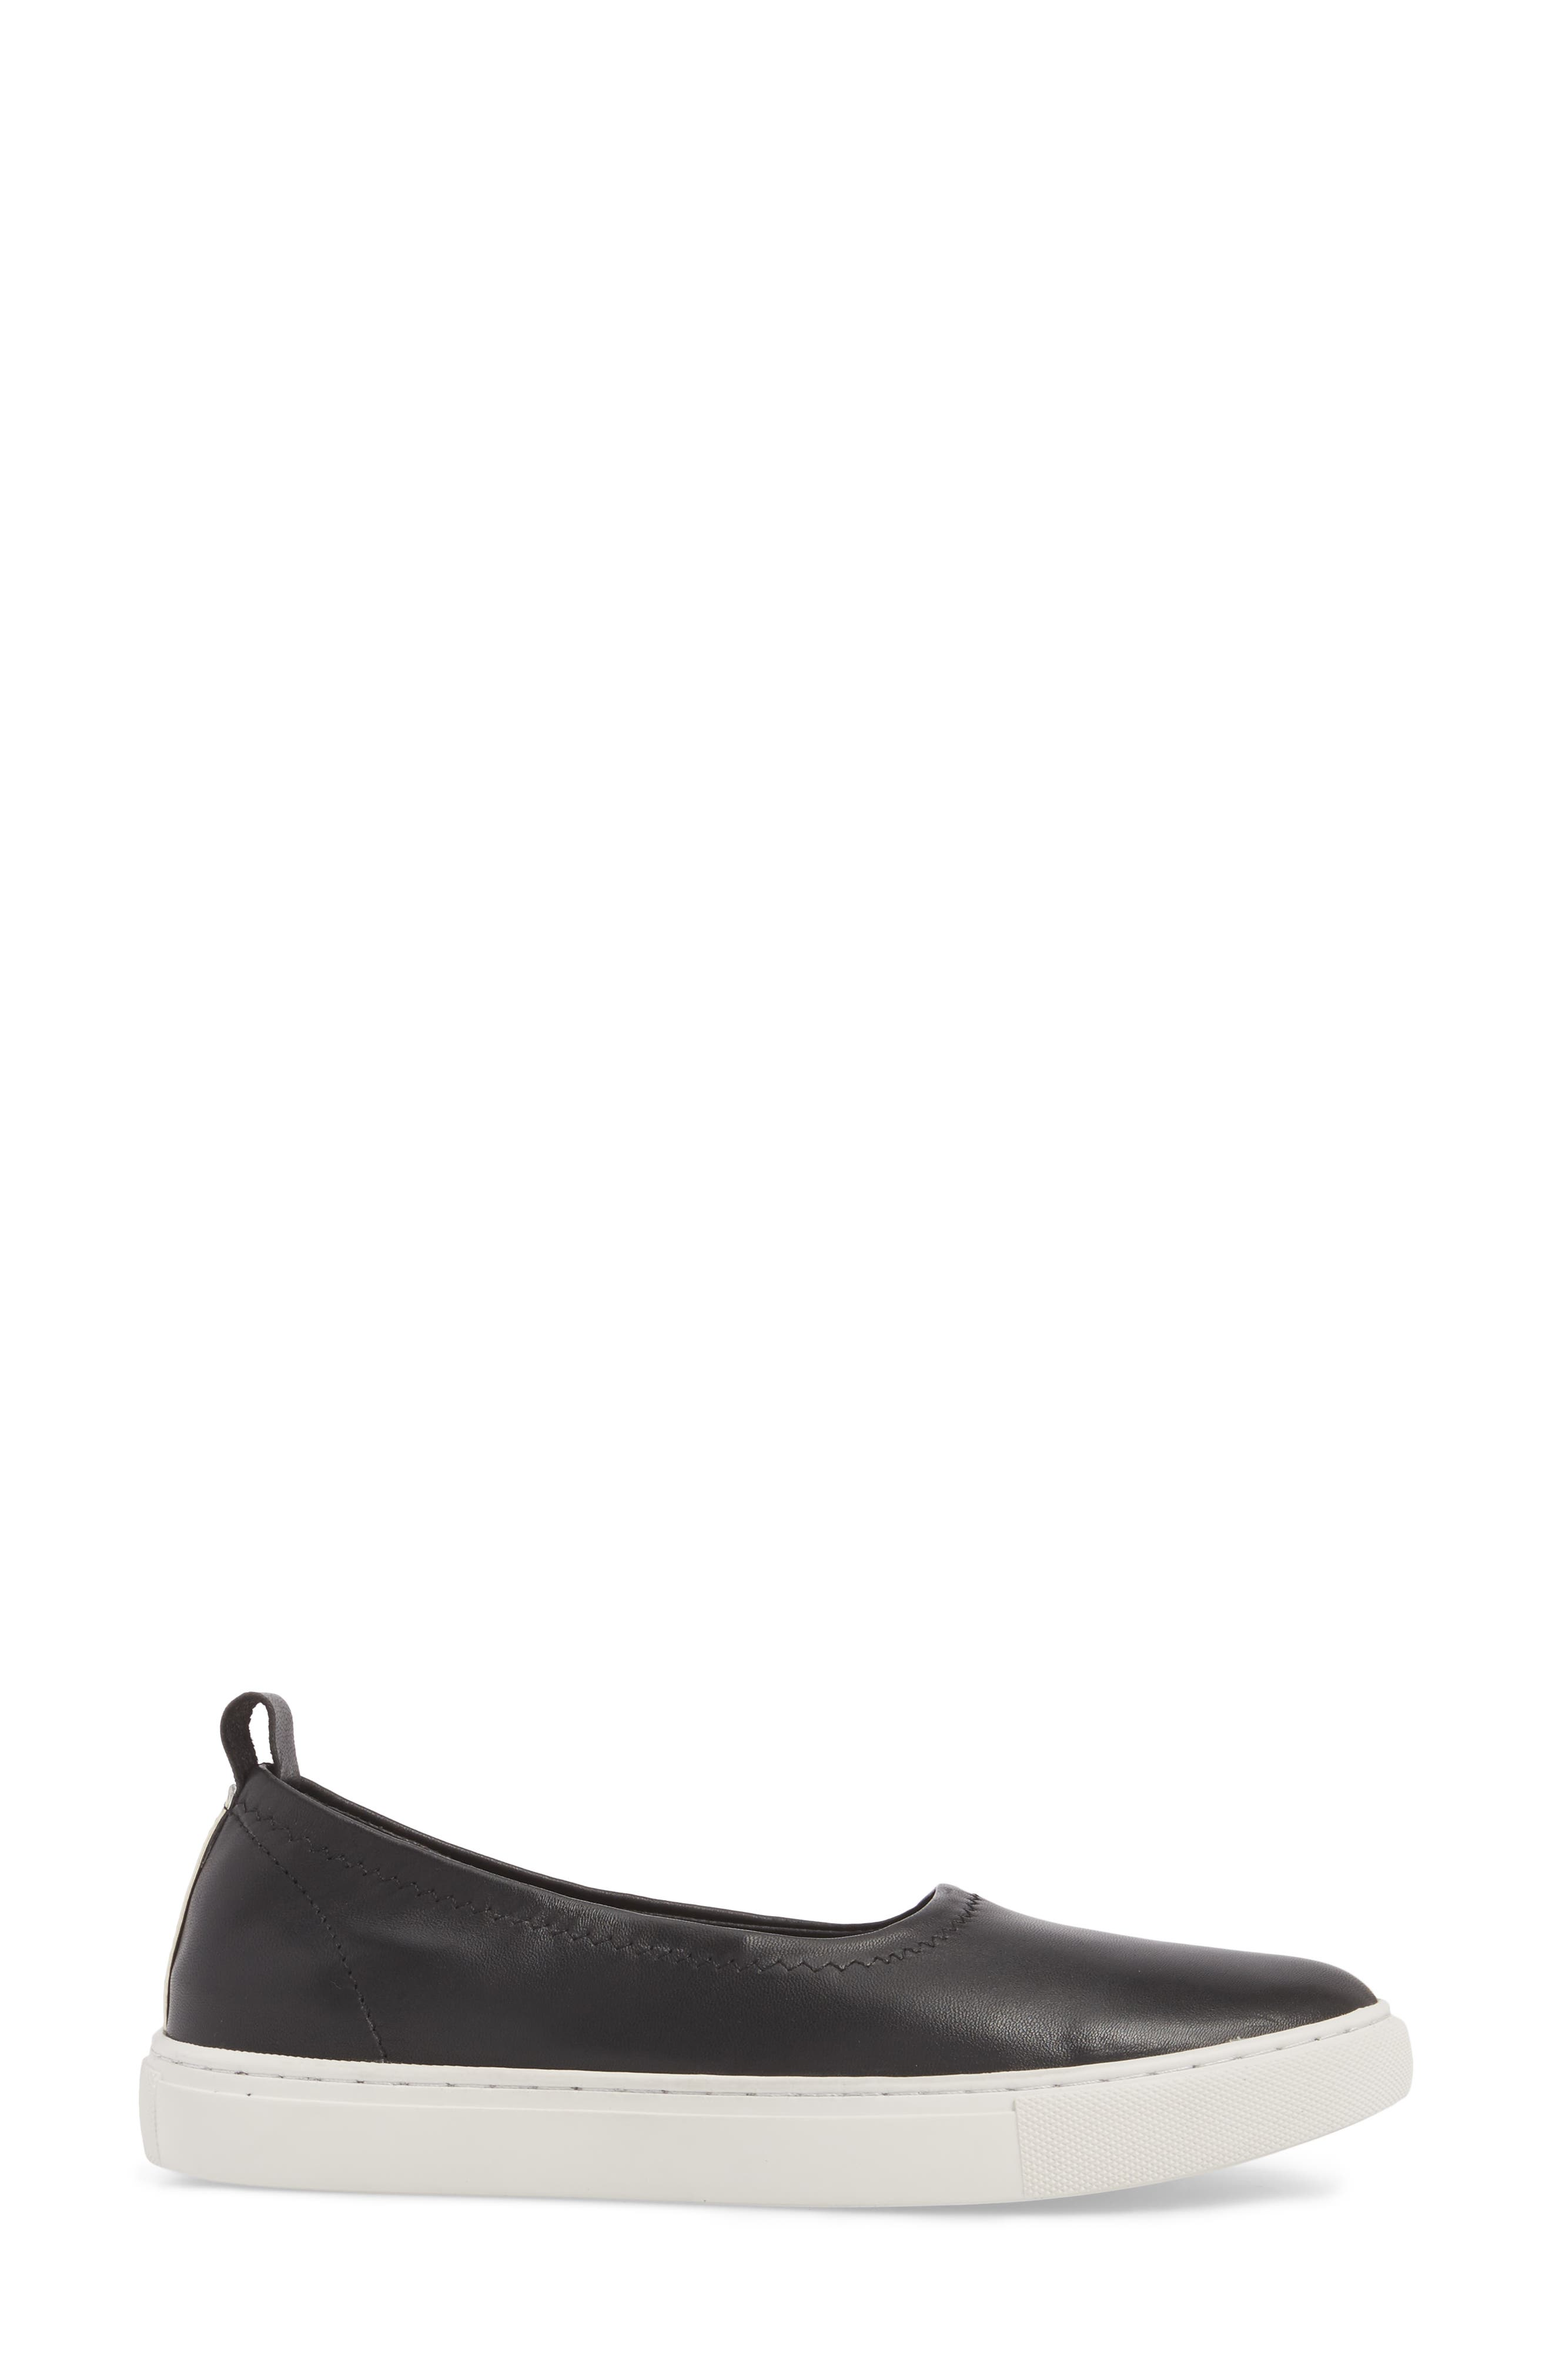 Kam Techni-Cole Ballet Flat,                             Alternate thumbnail 3, color,                             Black Leather